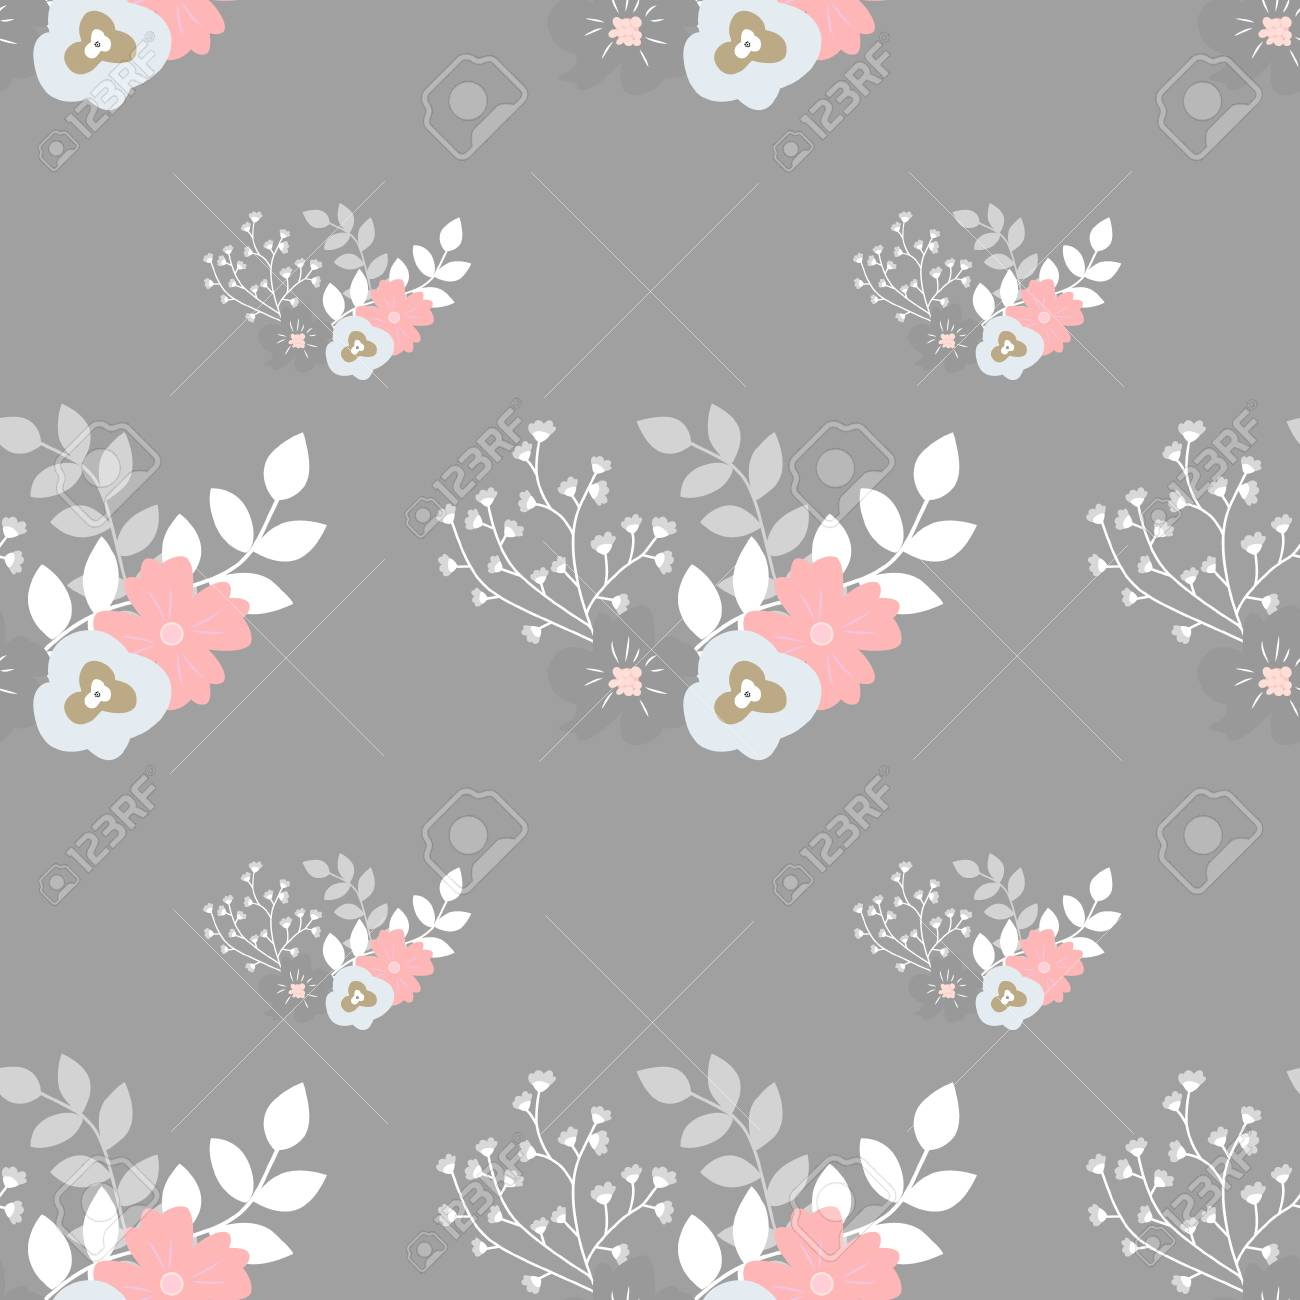 Seamless Floral Background Vector Illustration Pastel Cute Royalty